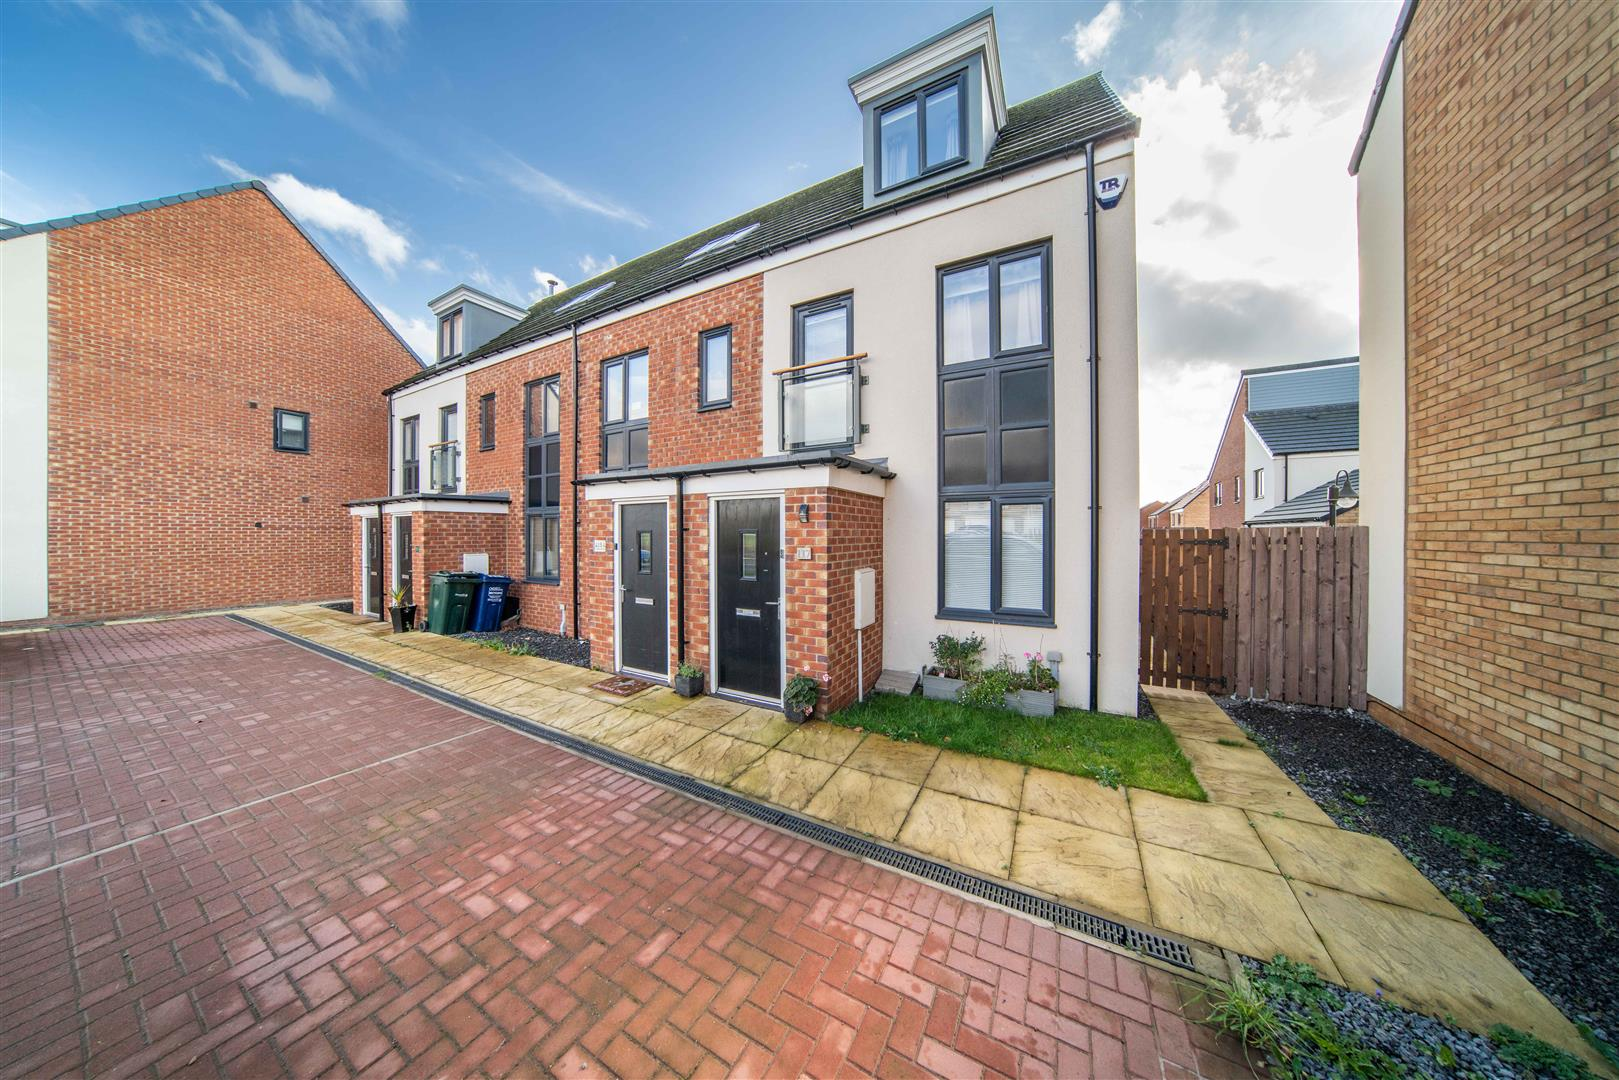 3 bed town house for sale in Great Park, NE13 9BD - Property Image 1